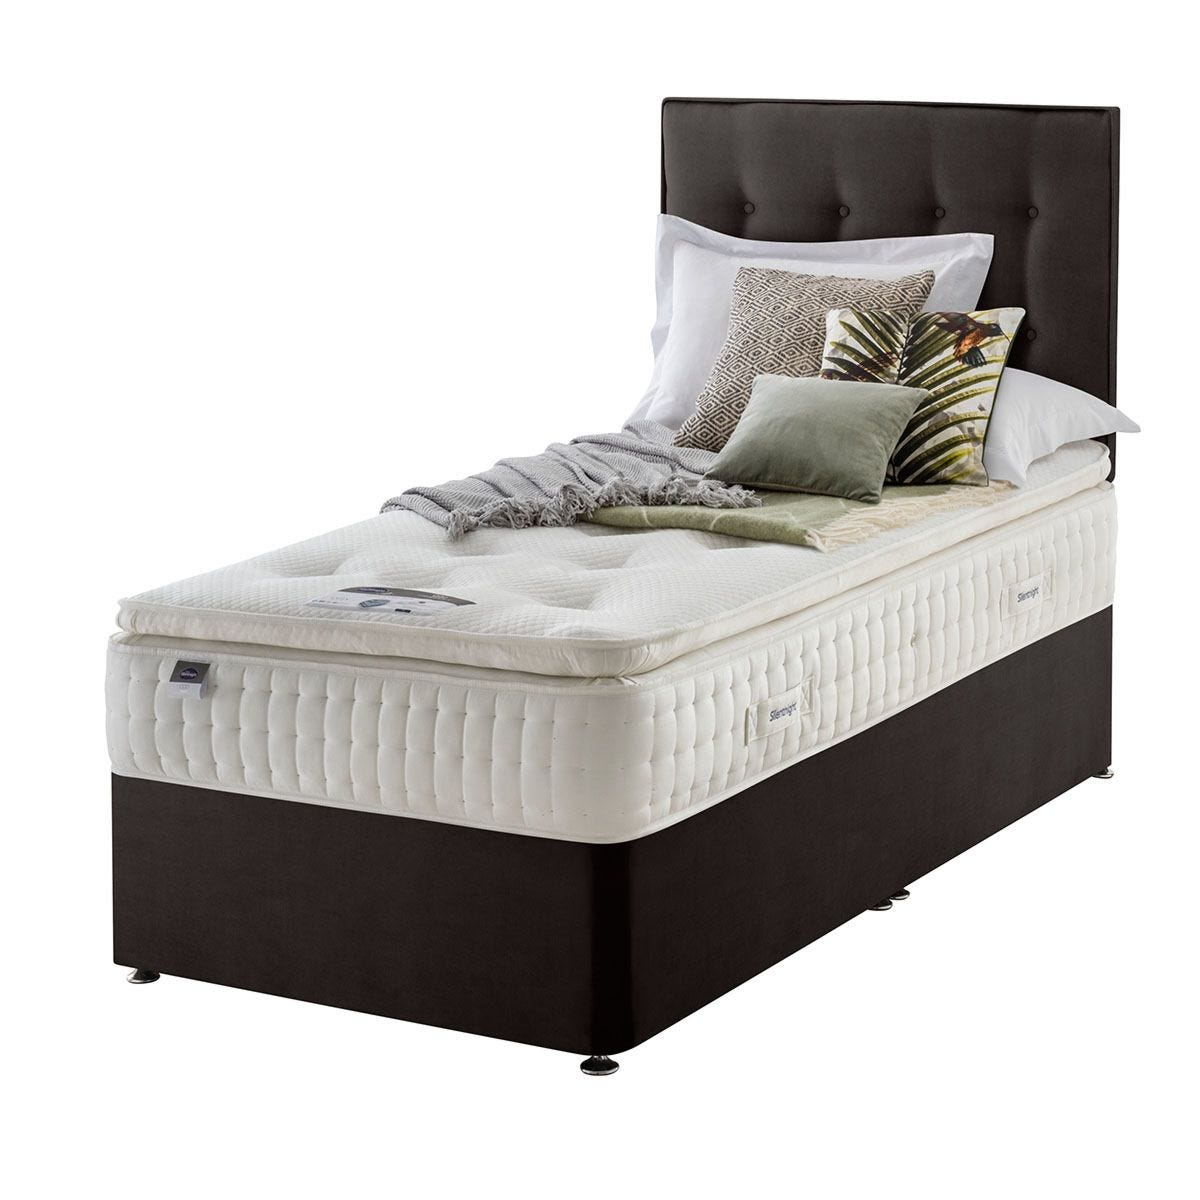 Silentnight Mirapocket Latex 1400 Non Storage Divan Bed - Velvet Charcoal Single